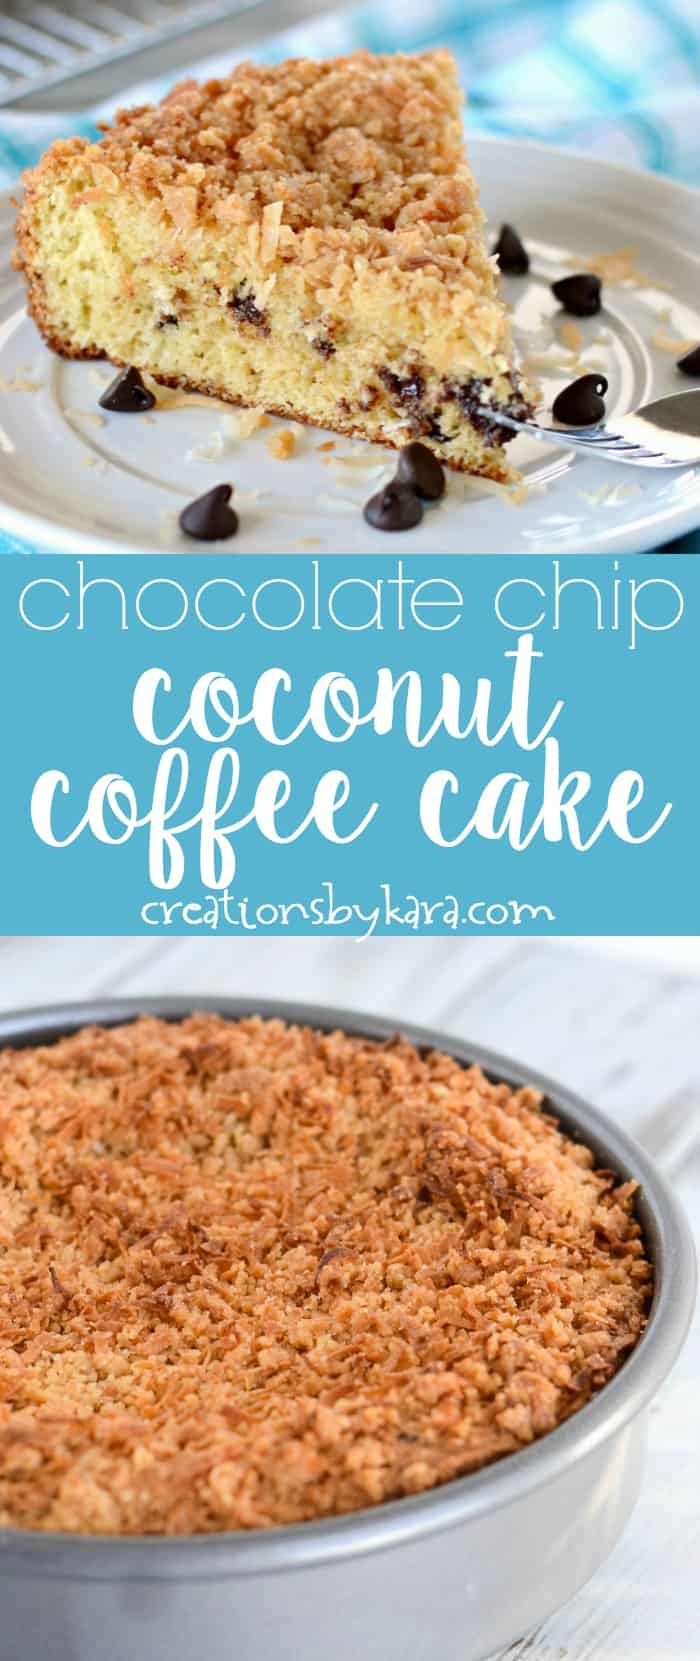 Chocolate Chip Coconut Coffee Cake - a decadent coffee cake recipe that is hard to resist. #coffeecake #coconutchocolate #brunchrecipe #toastedcoconut